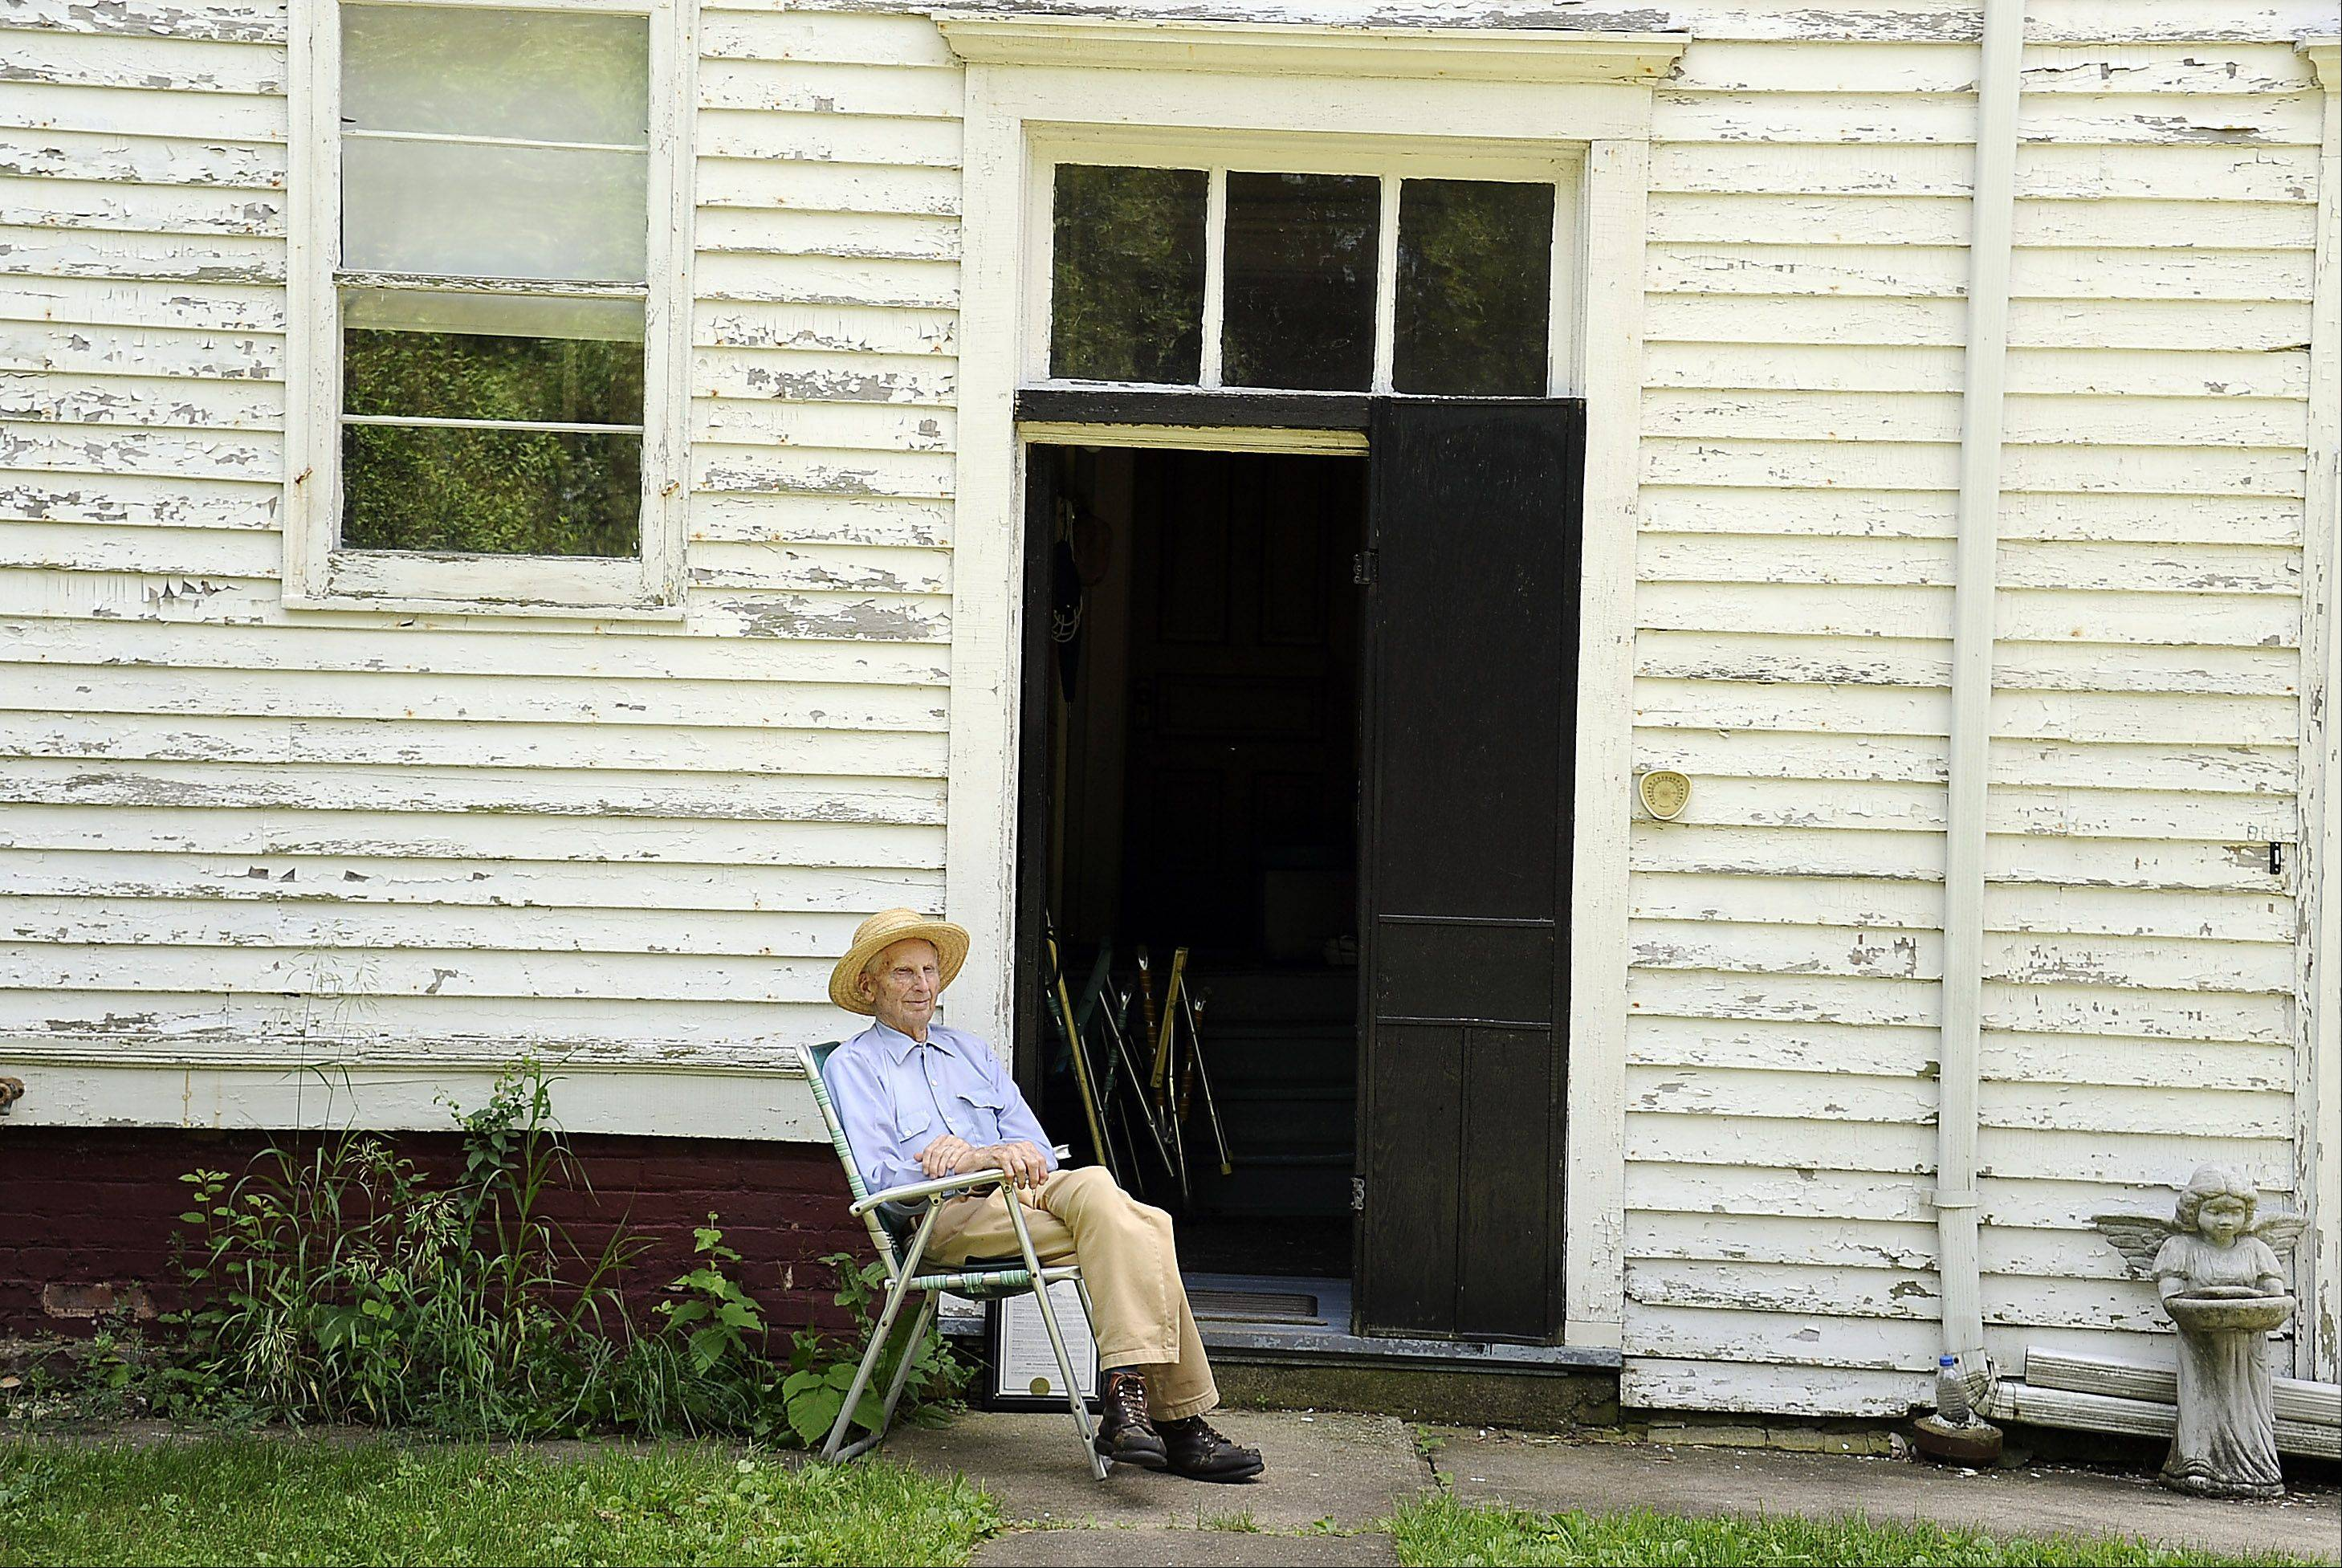 Harold Bergman, 97, of Hoffman Estates sits in his backyard next to the house he was born in, soaking up the cool air filtering up from the cellar on a hot summer day.